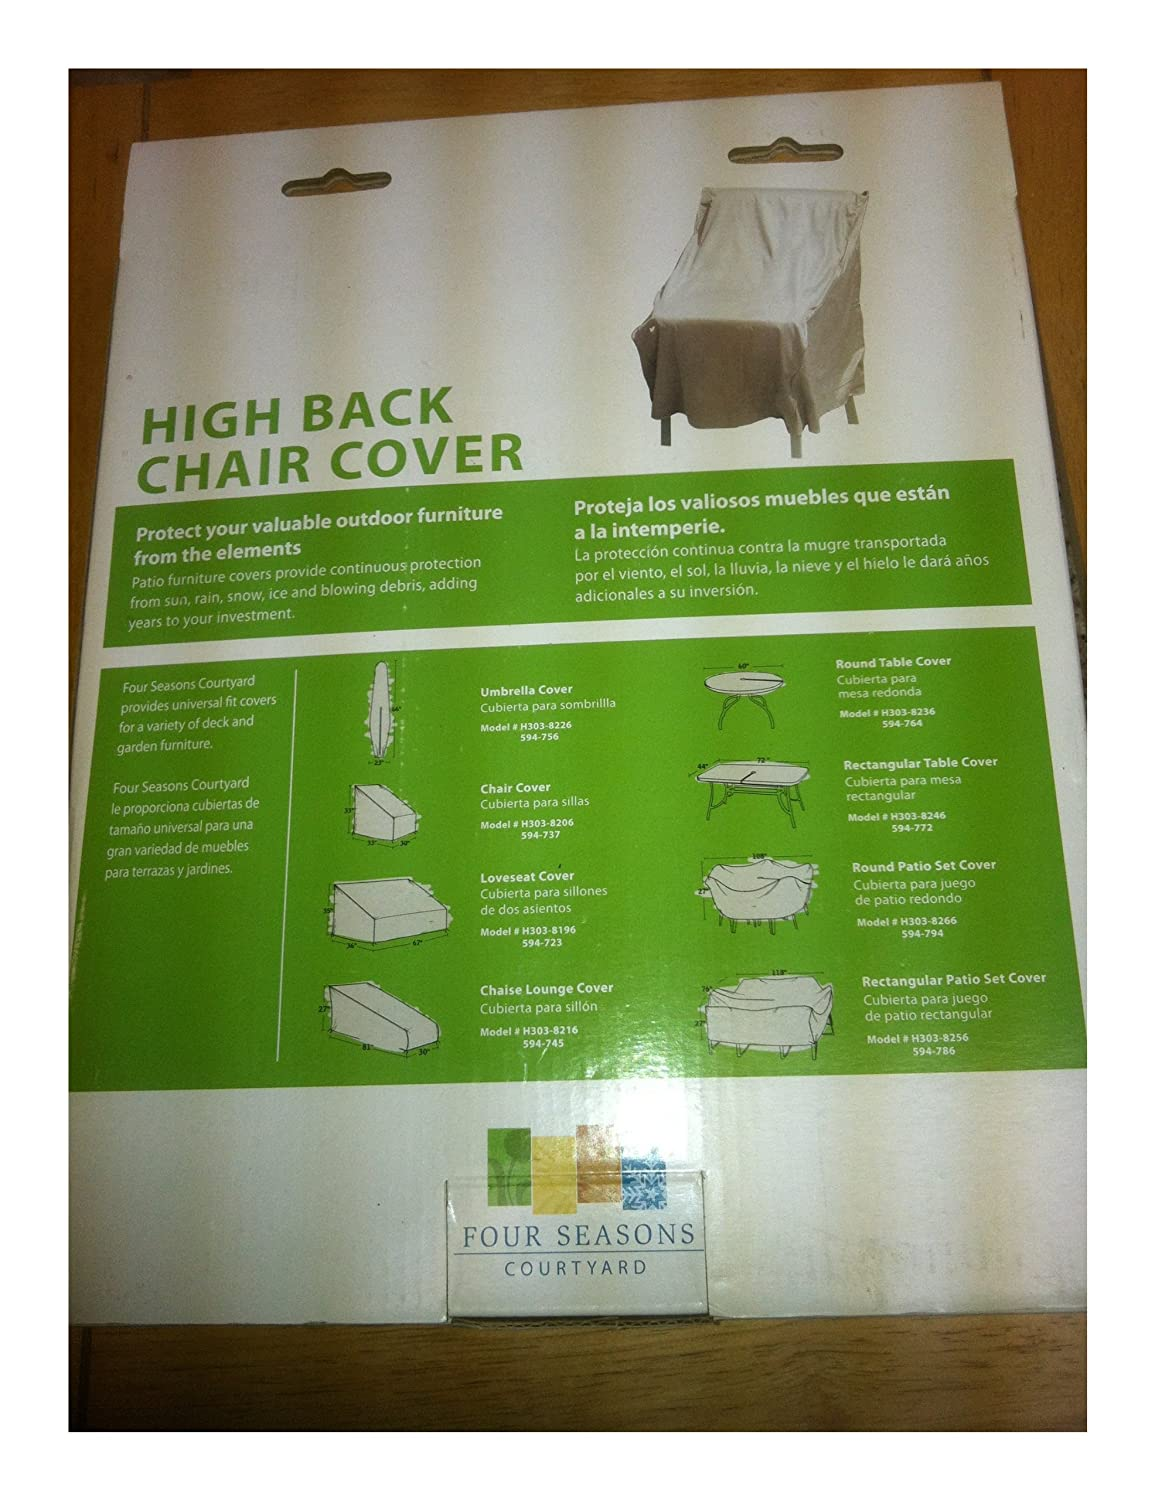 Amazon.com : High Back Durable Polyester w/ PVC Backing Chair Cover ...